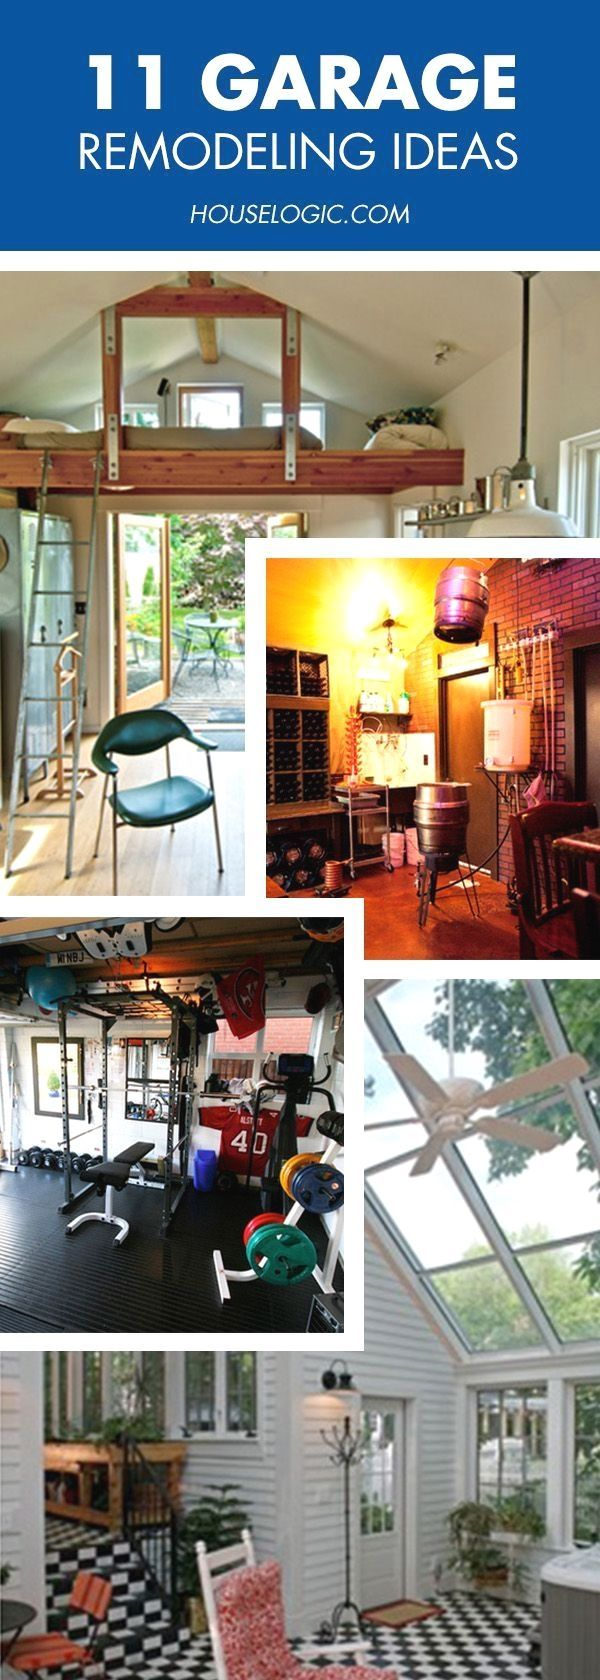 These garage remodel ideas will make you